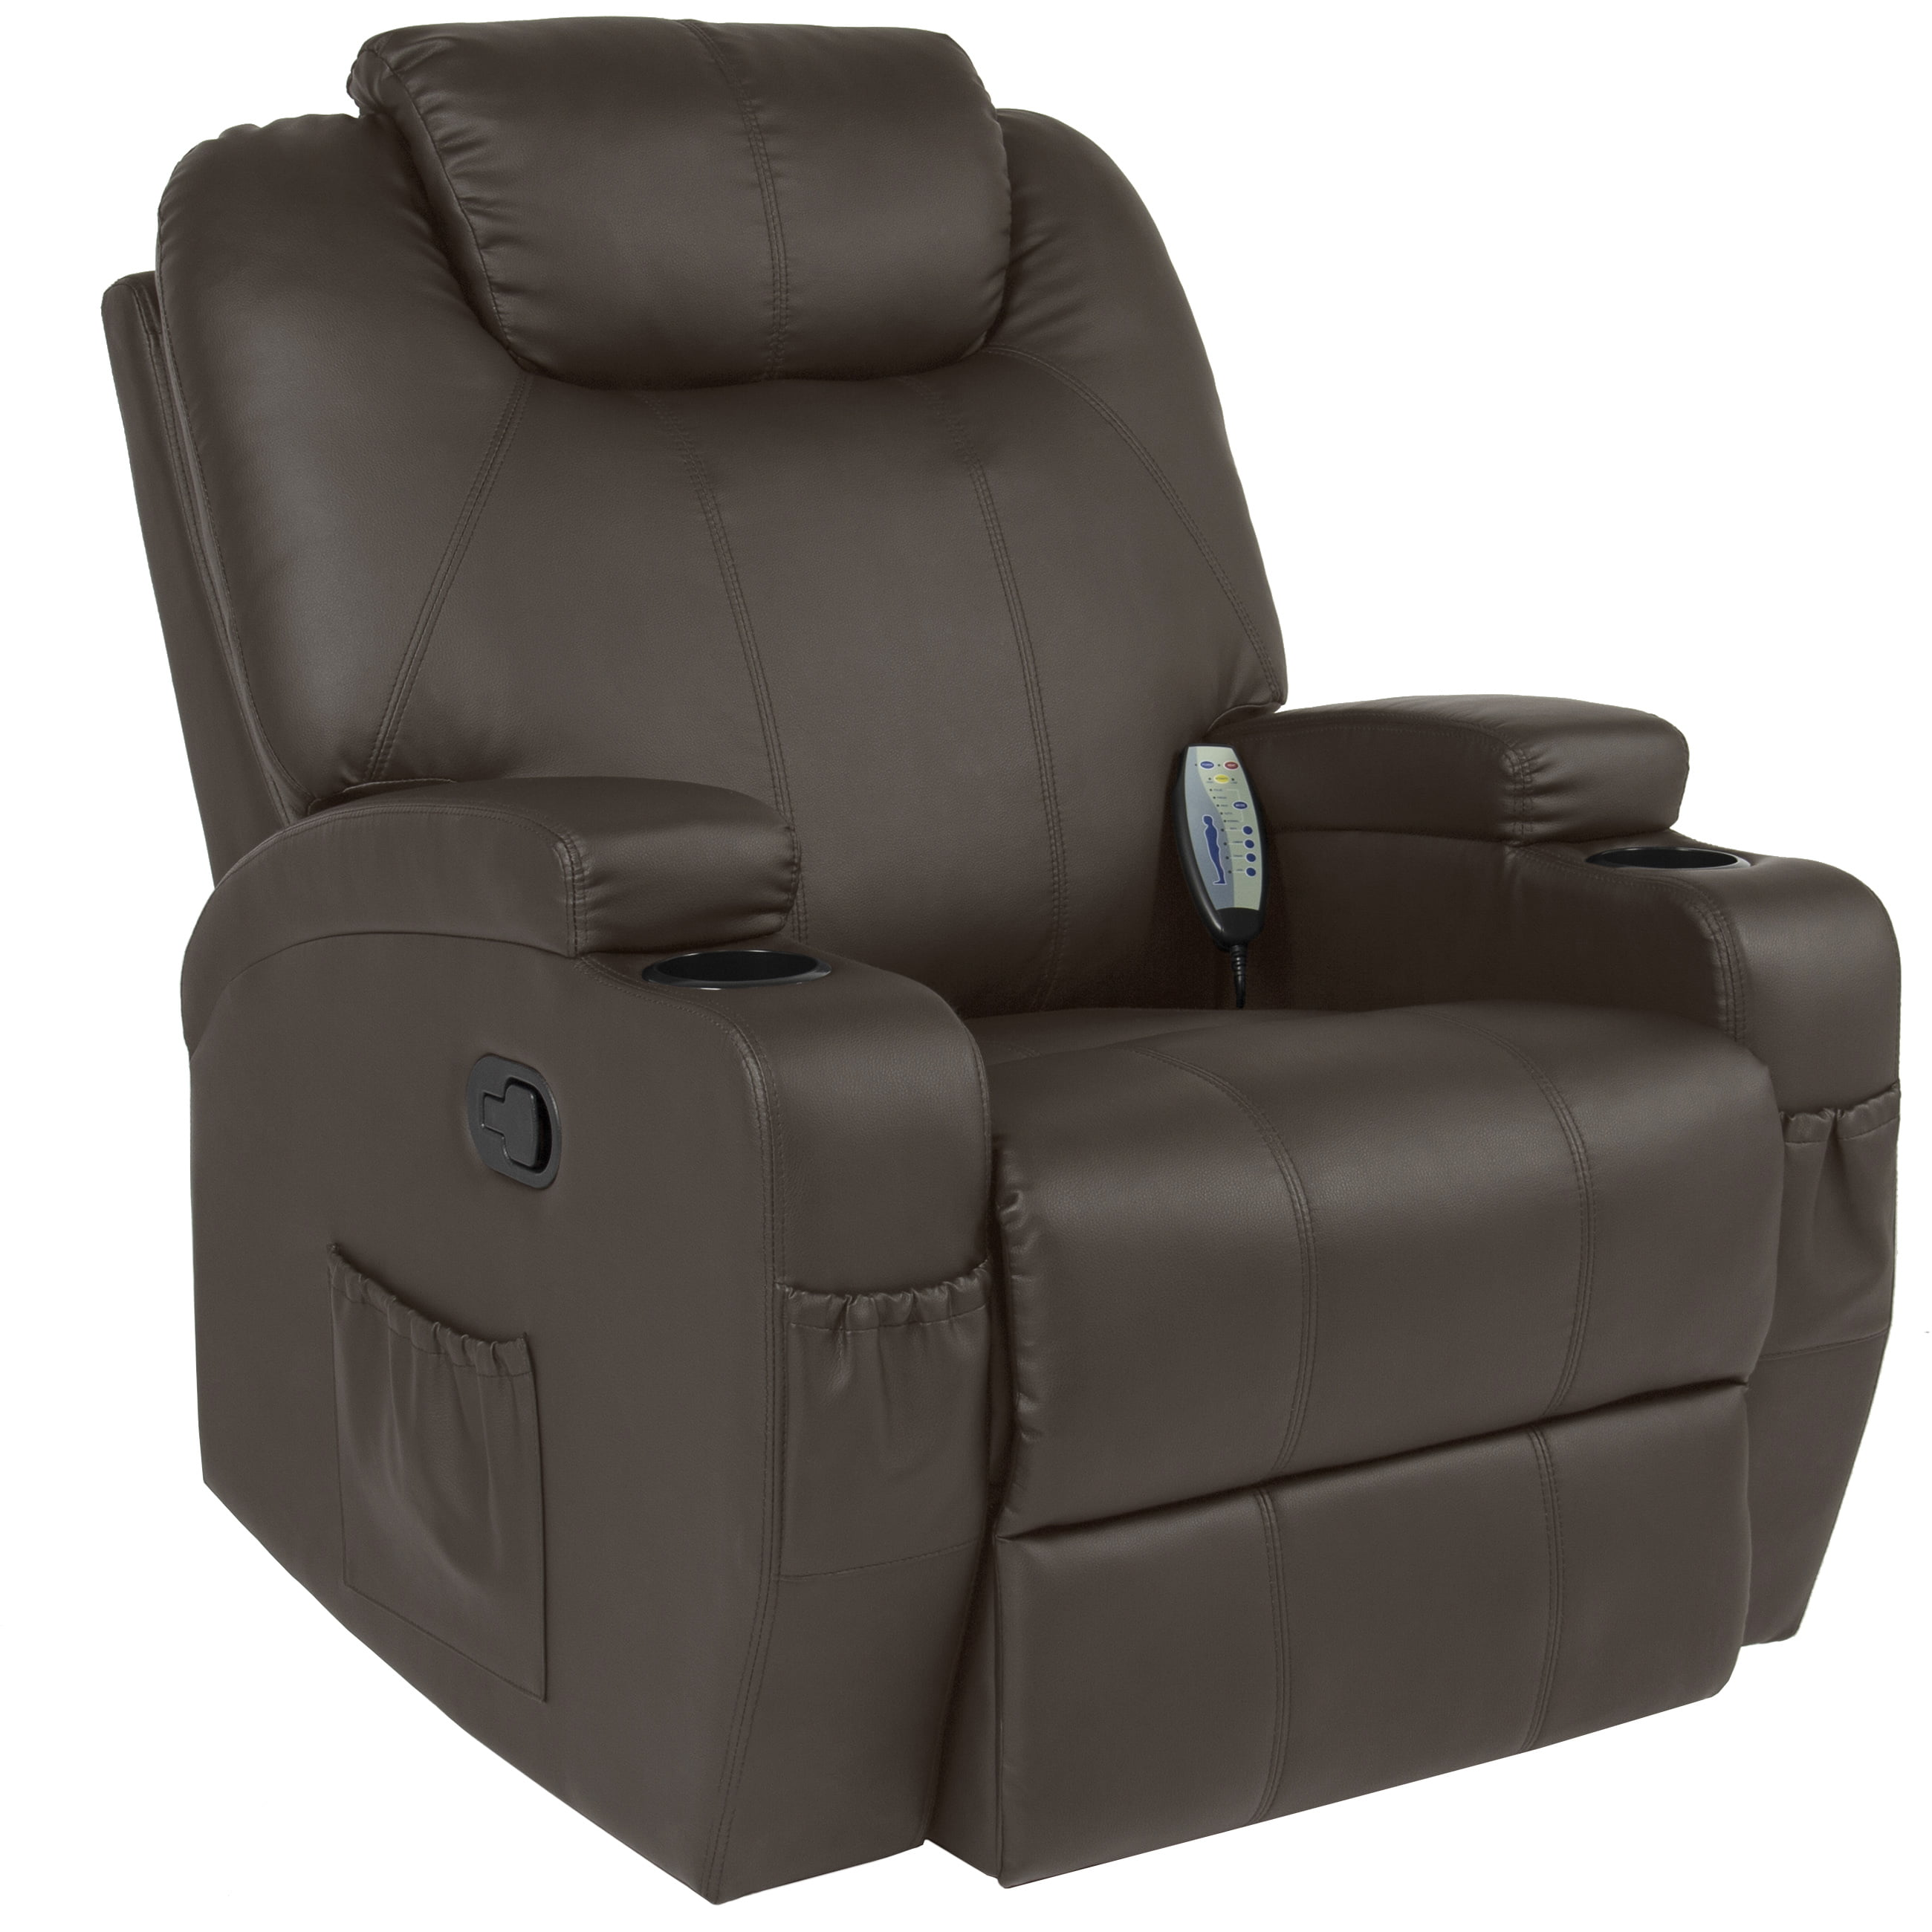 home shipping garden chair prolounger overstock recliner free nubuck product grey today rocker